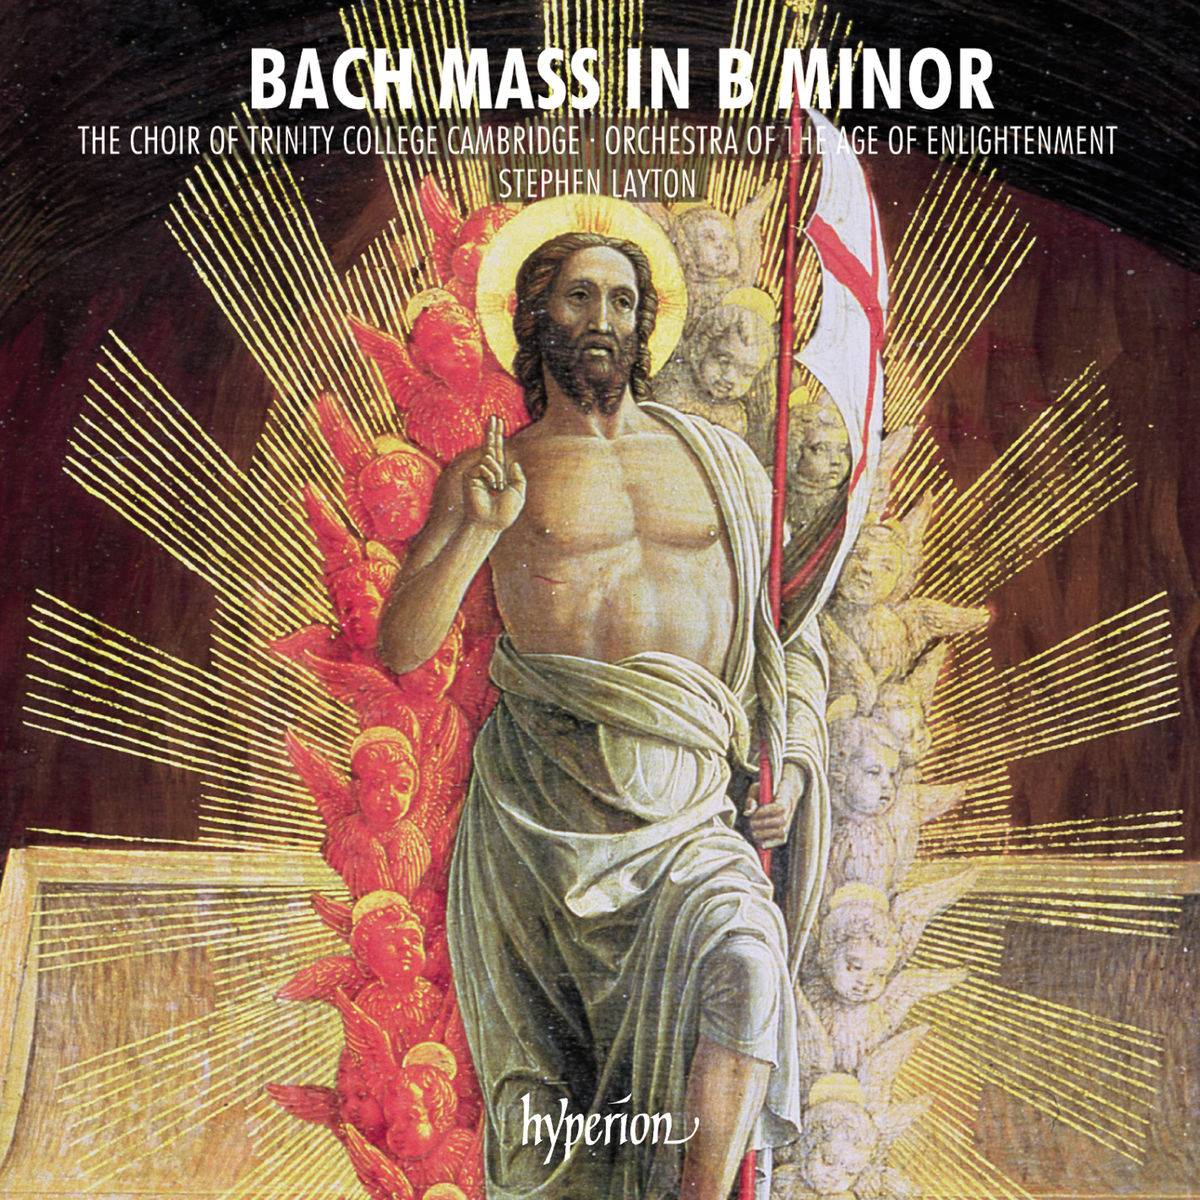 Trinity College Choir Cambridge, Orchestra of the Age of Enlightenment & Stephen Layton - Bach: Mass in B Minor (2018)